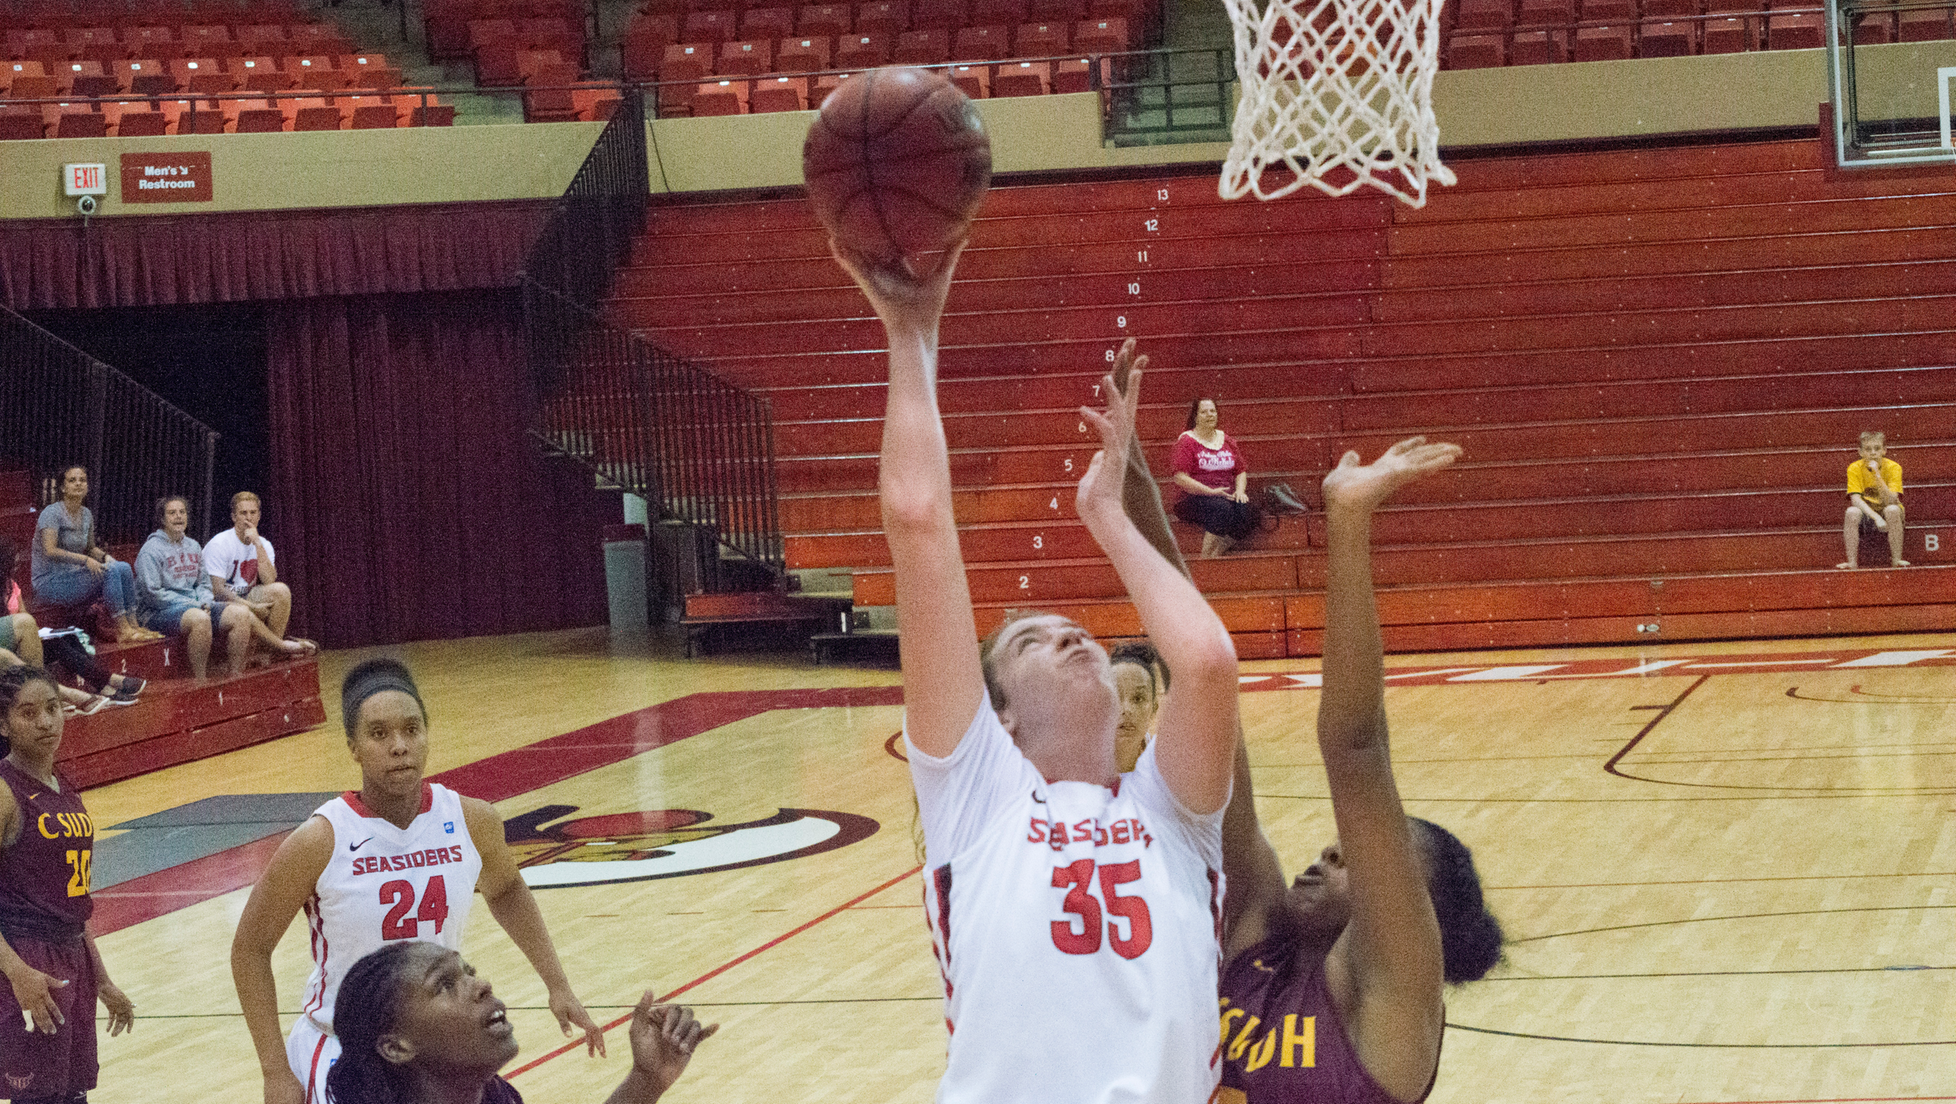 Baldwin recorded her second consecutive double-double with 18 points and 12 rebounds against the Silverswords.